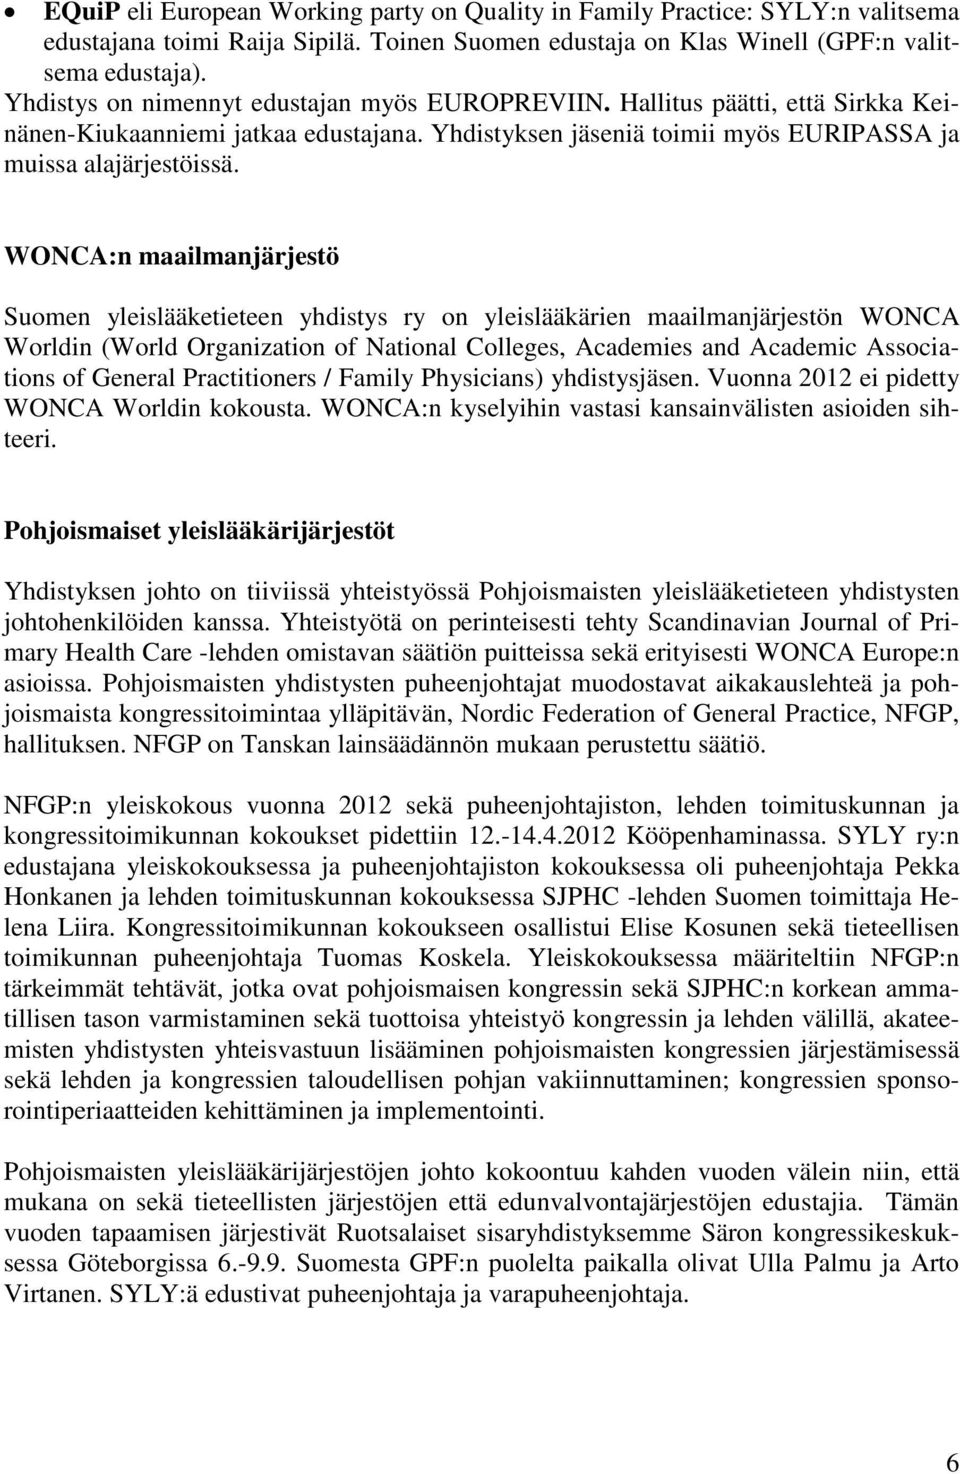 WONCA:n maailmanjärjestö Suomen yleislääketieteen yhdistys ry on yleislääkärien maailmanjärjestön WONCA Worldin (World Organization of National Colleges, Academies and Academic Associations of